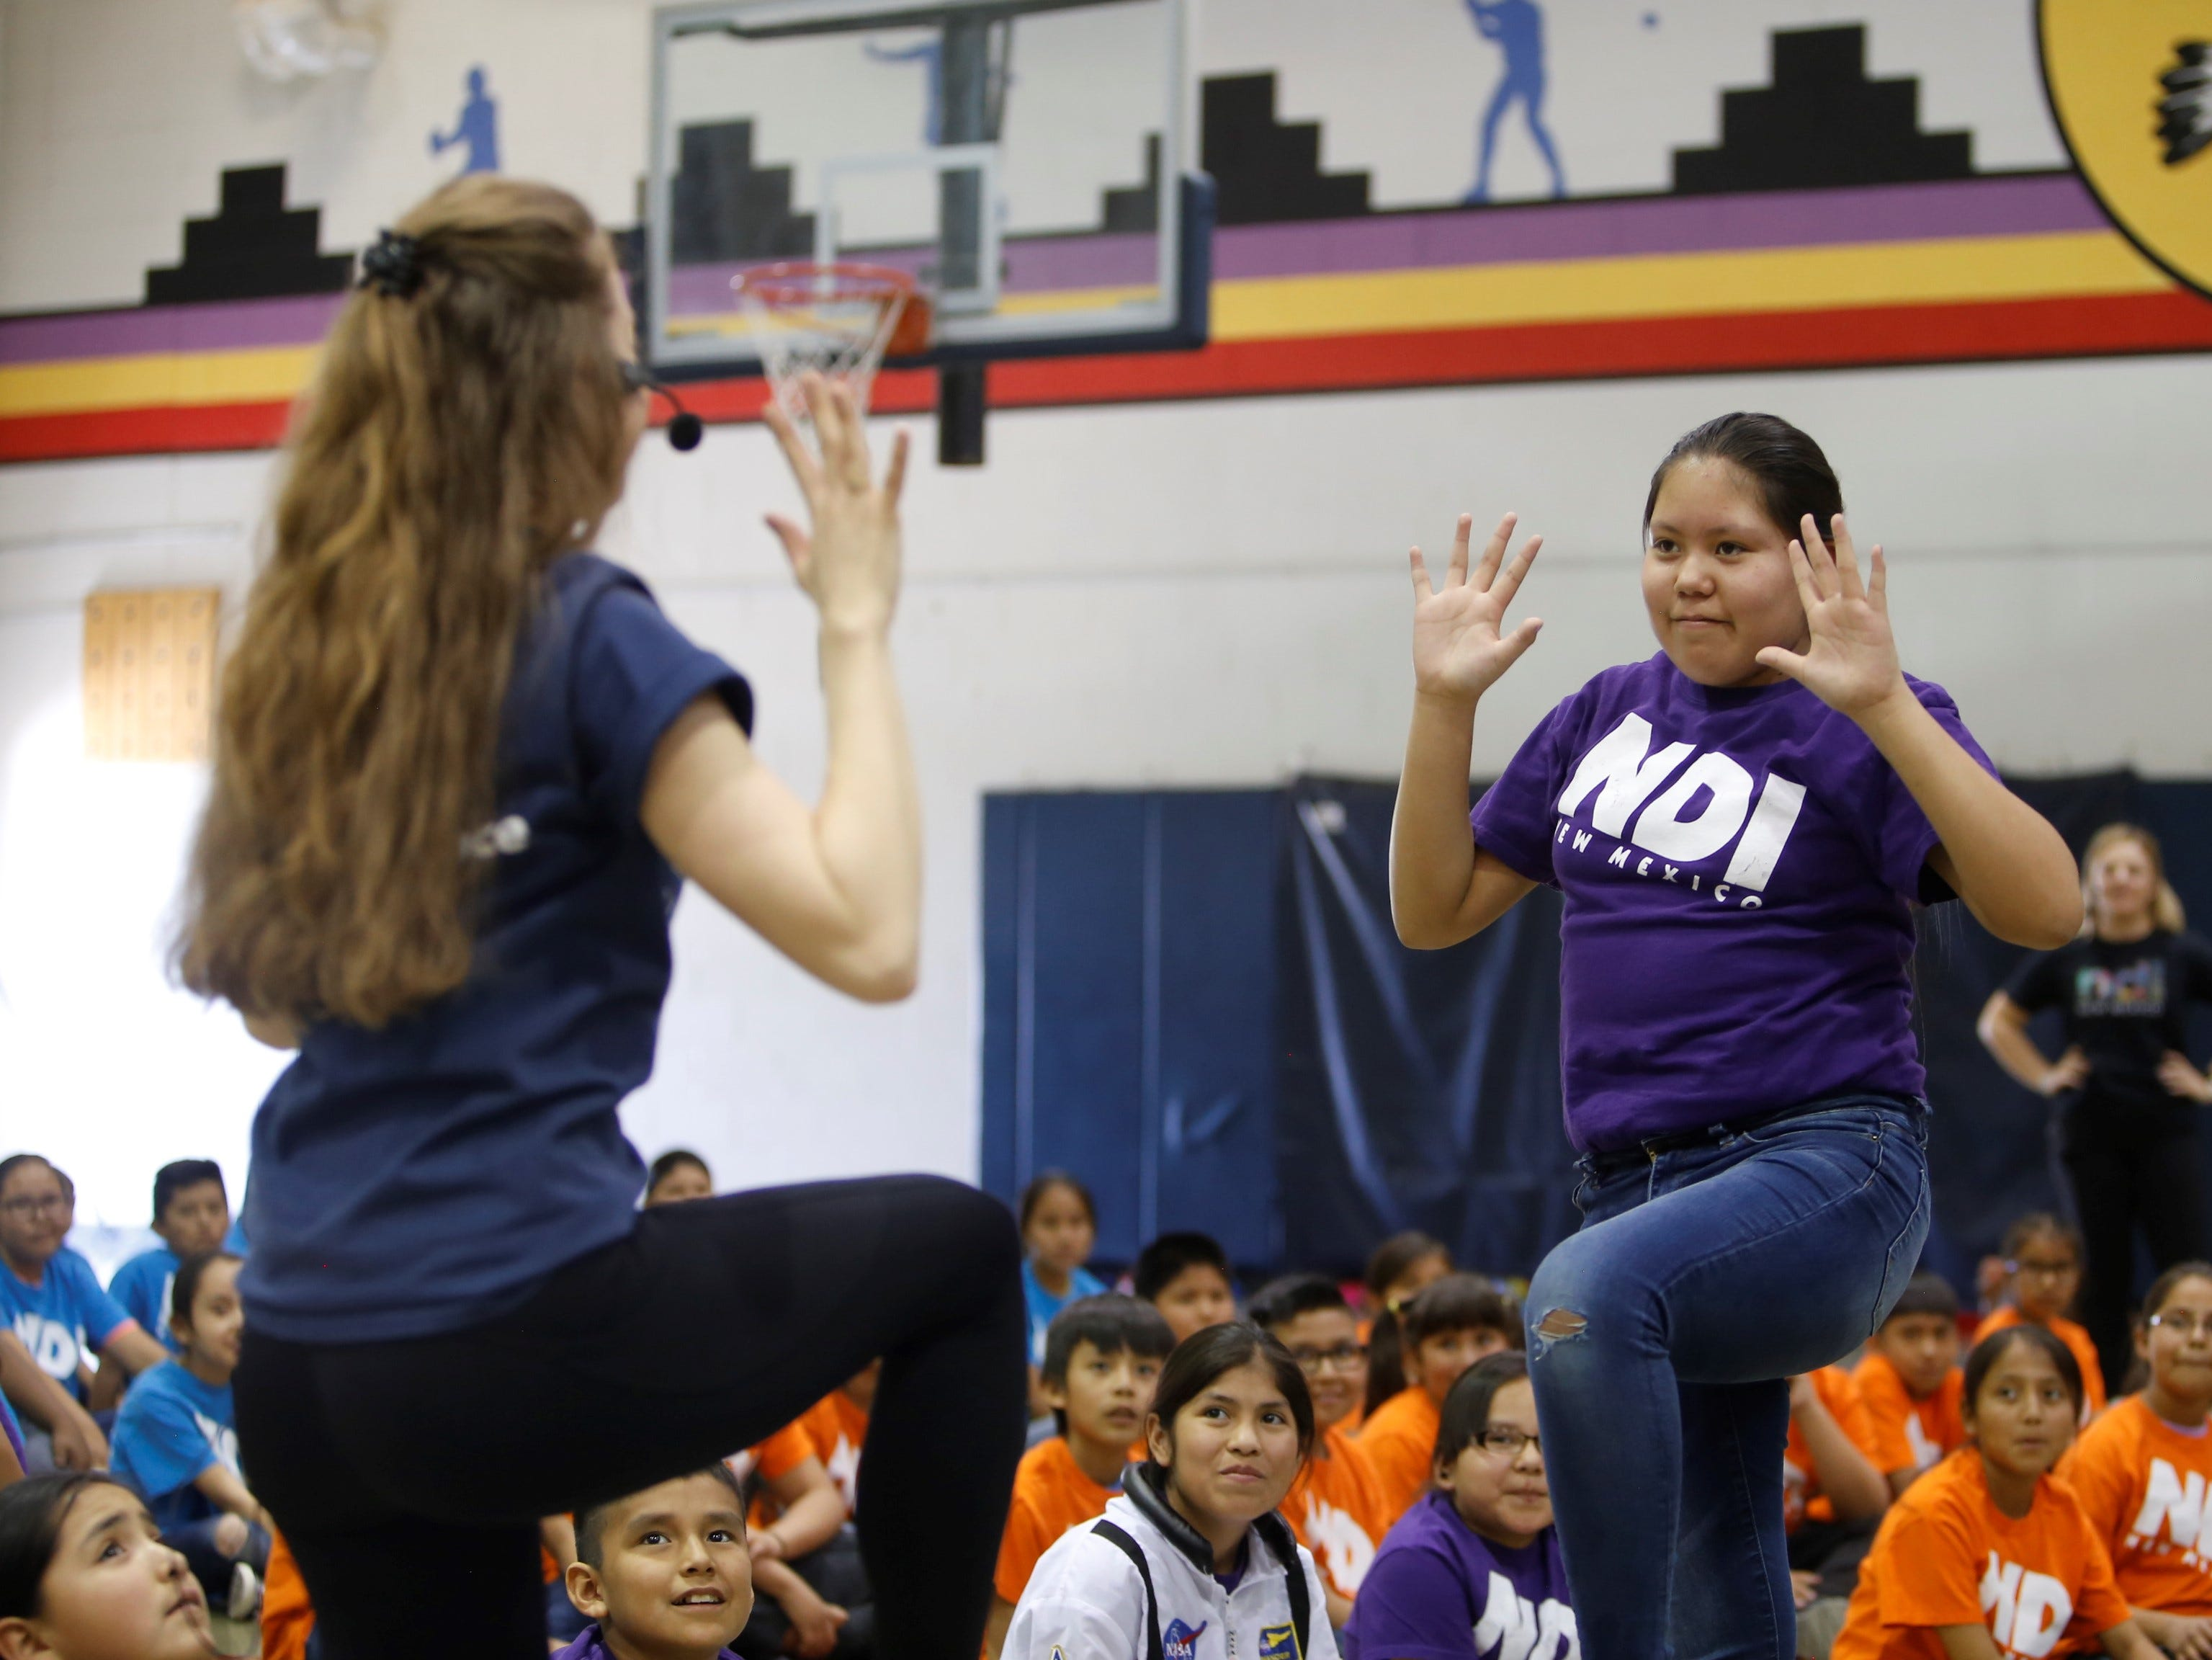 Kiera Foster, right, follows Emma Raker, residency apprentice with NDI New Mexico, during a performance on Friday at Atsá Biyáázh Community School in Shiprock.